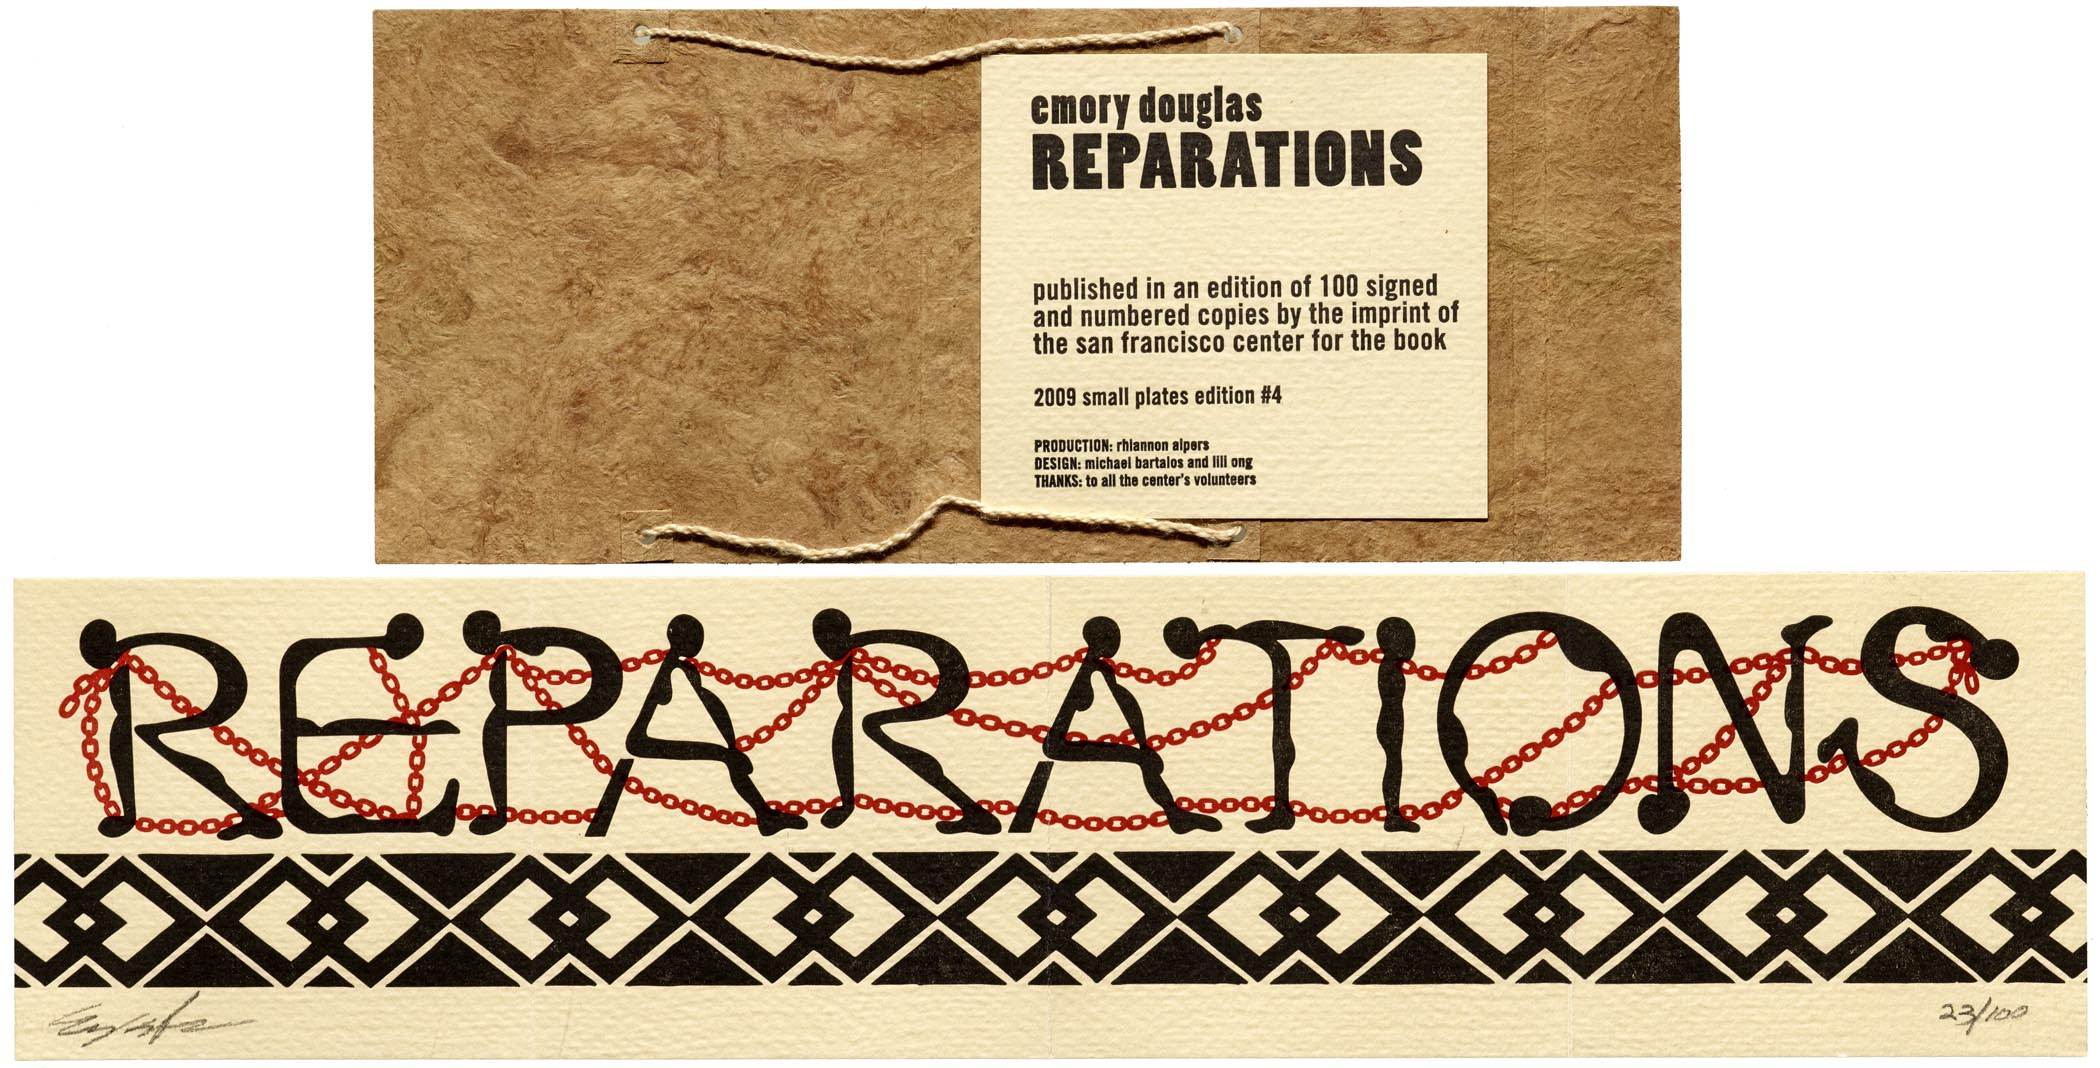 Emory Douglas, Michael Bartalos, and Lili Ong, Reparations, 2009.